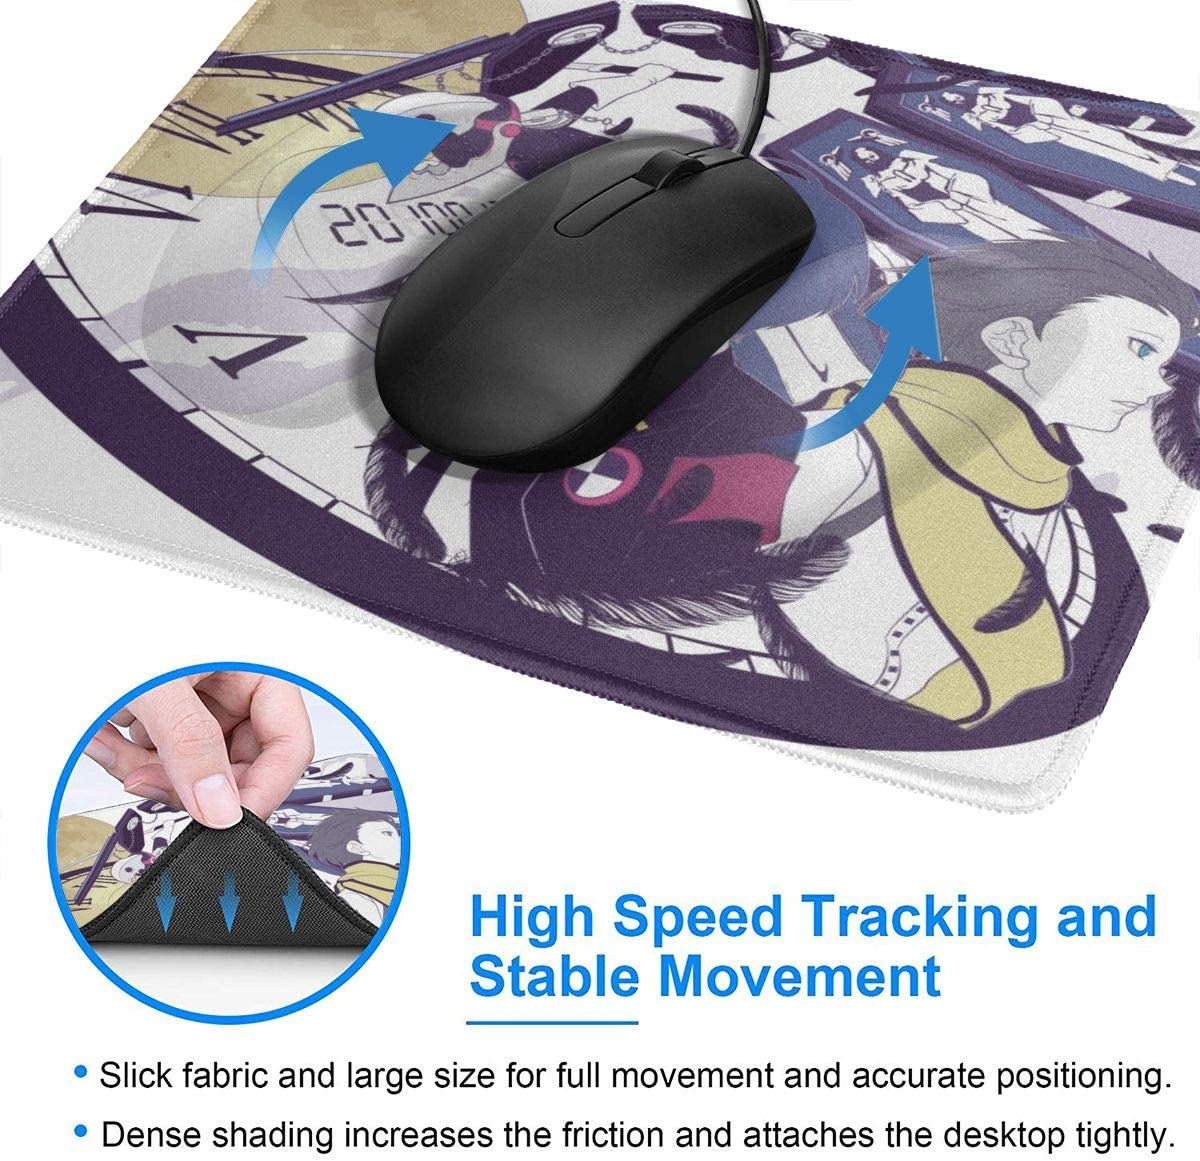 Protagonist Aigis Persona 3 Mouse Pad Non Slip Gaming Mouse Pad with Stitched Edge Computer PC Mousepad Neoprene Base for Office Home